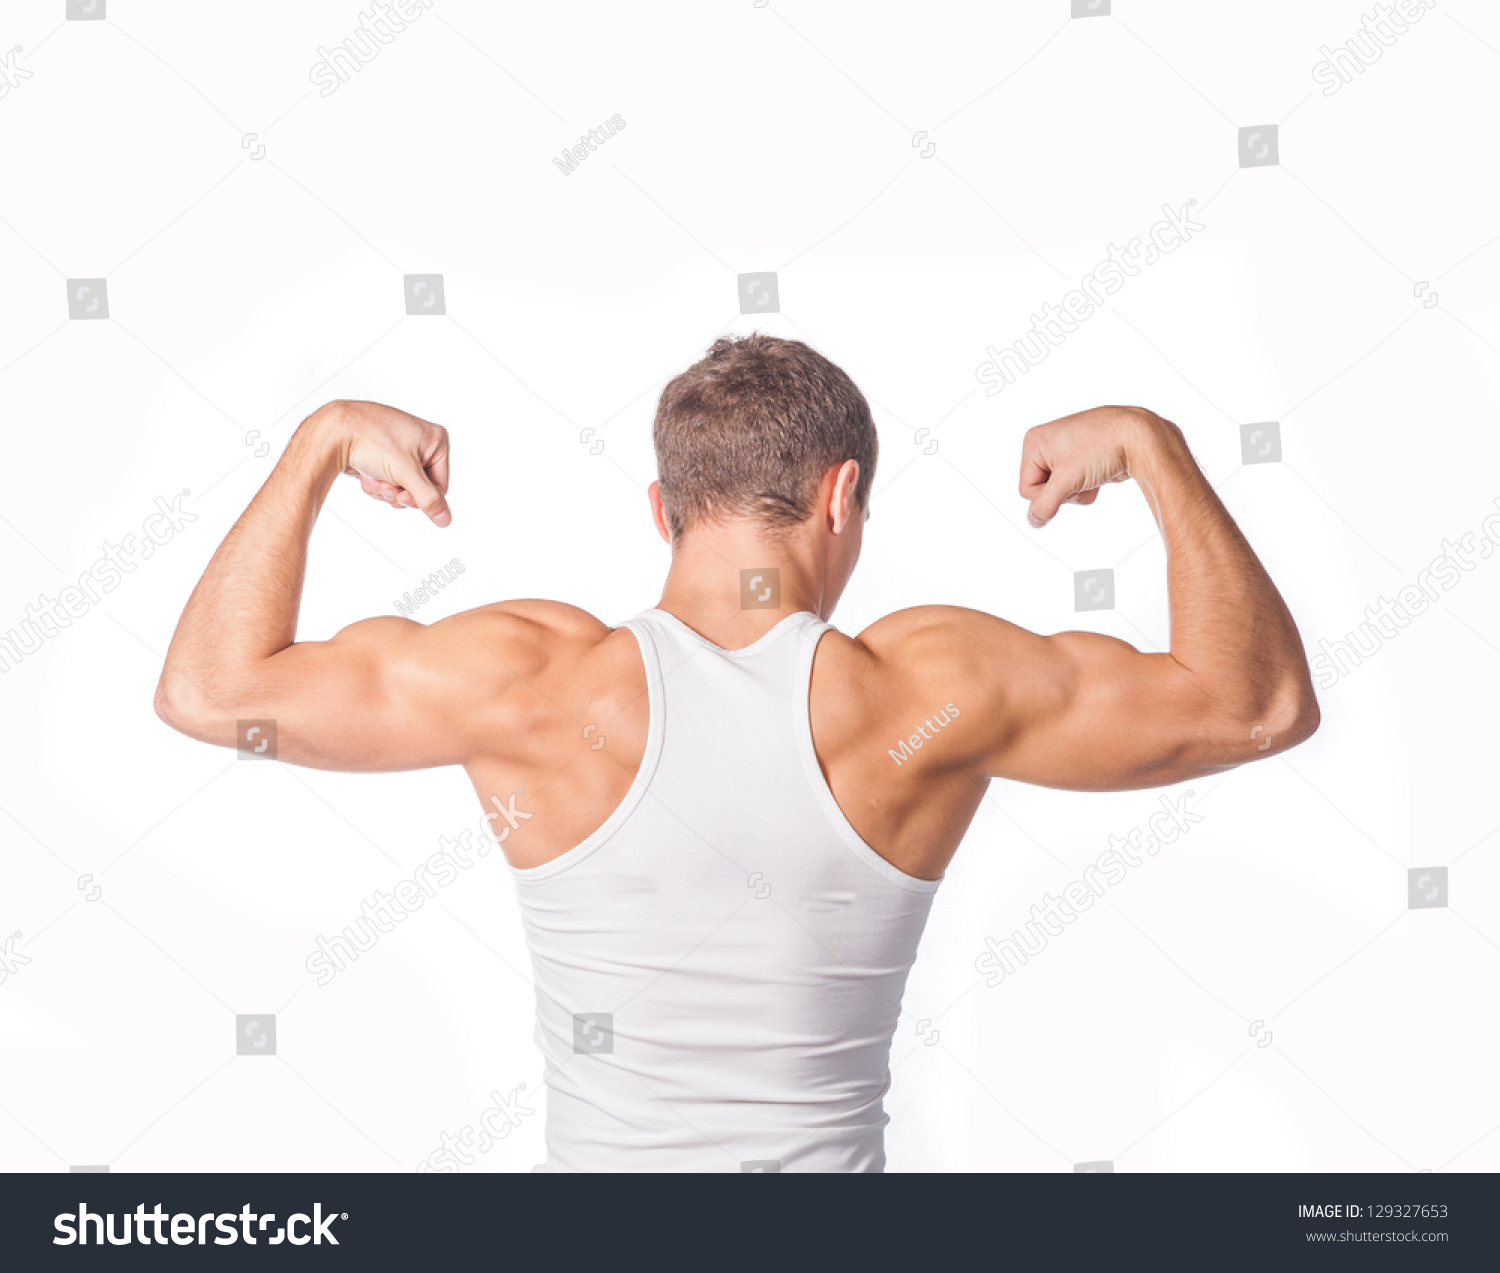 stock-photo-back-of-a-champion-body-buil